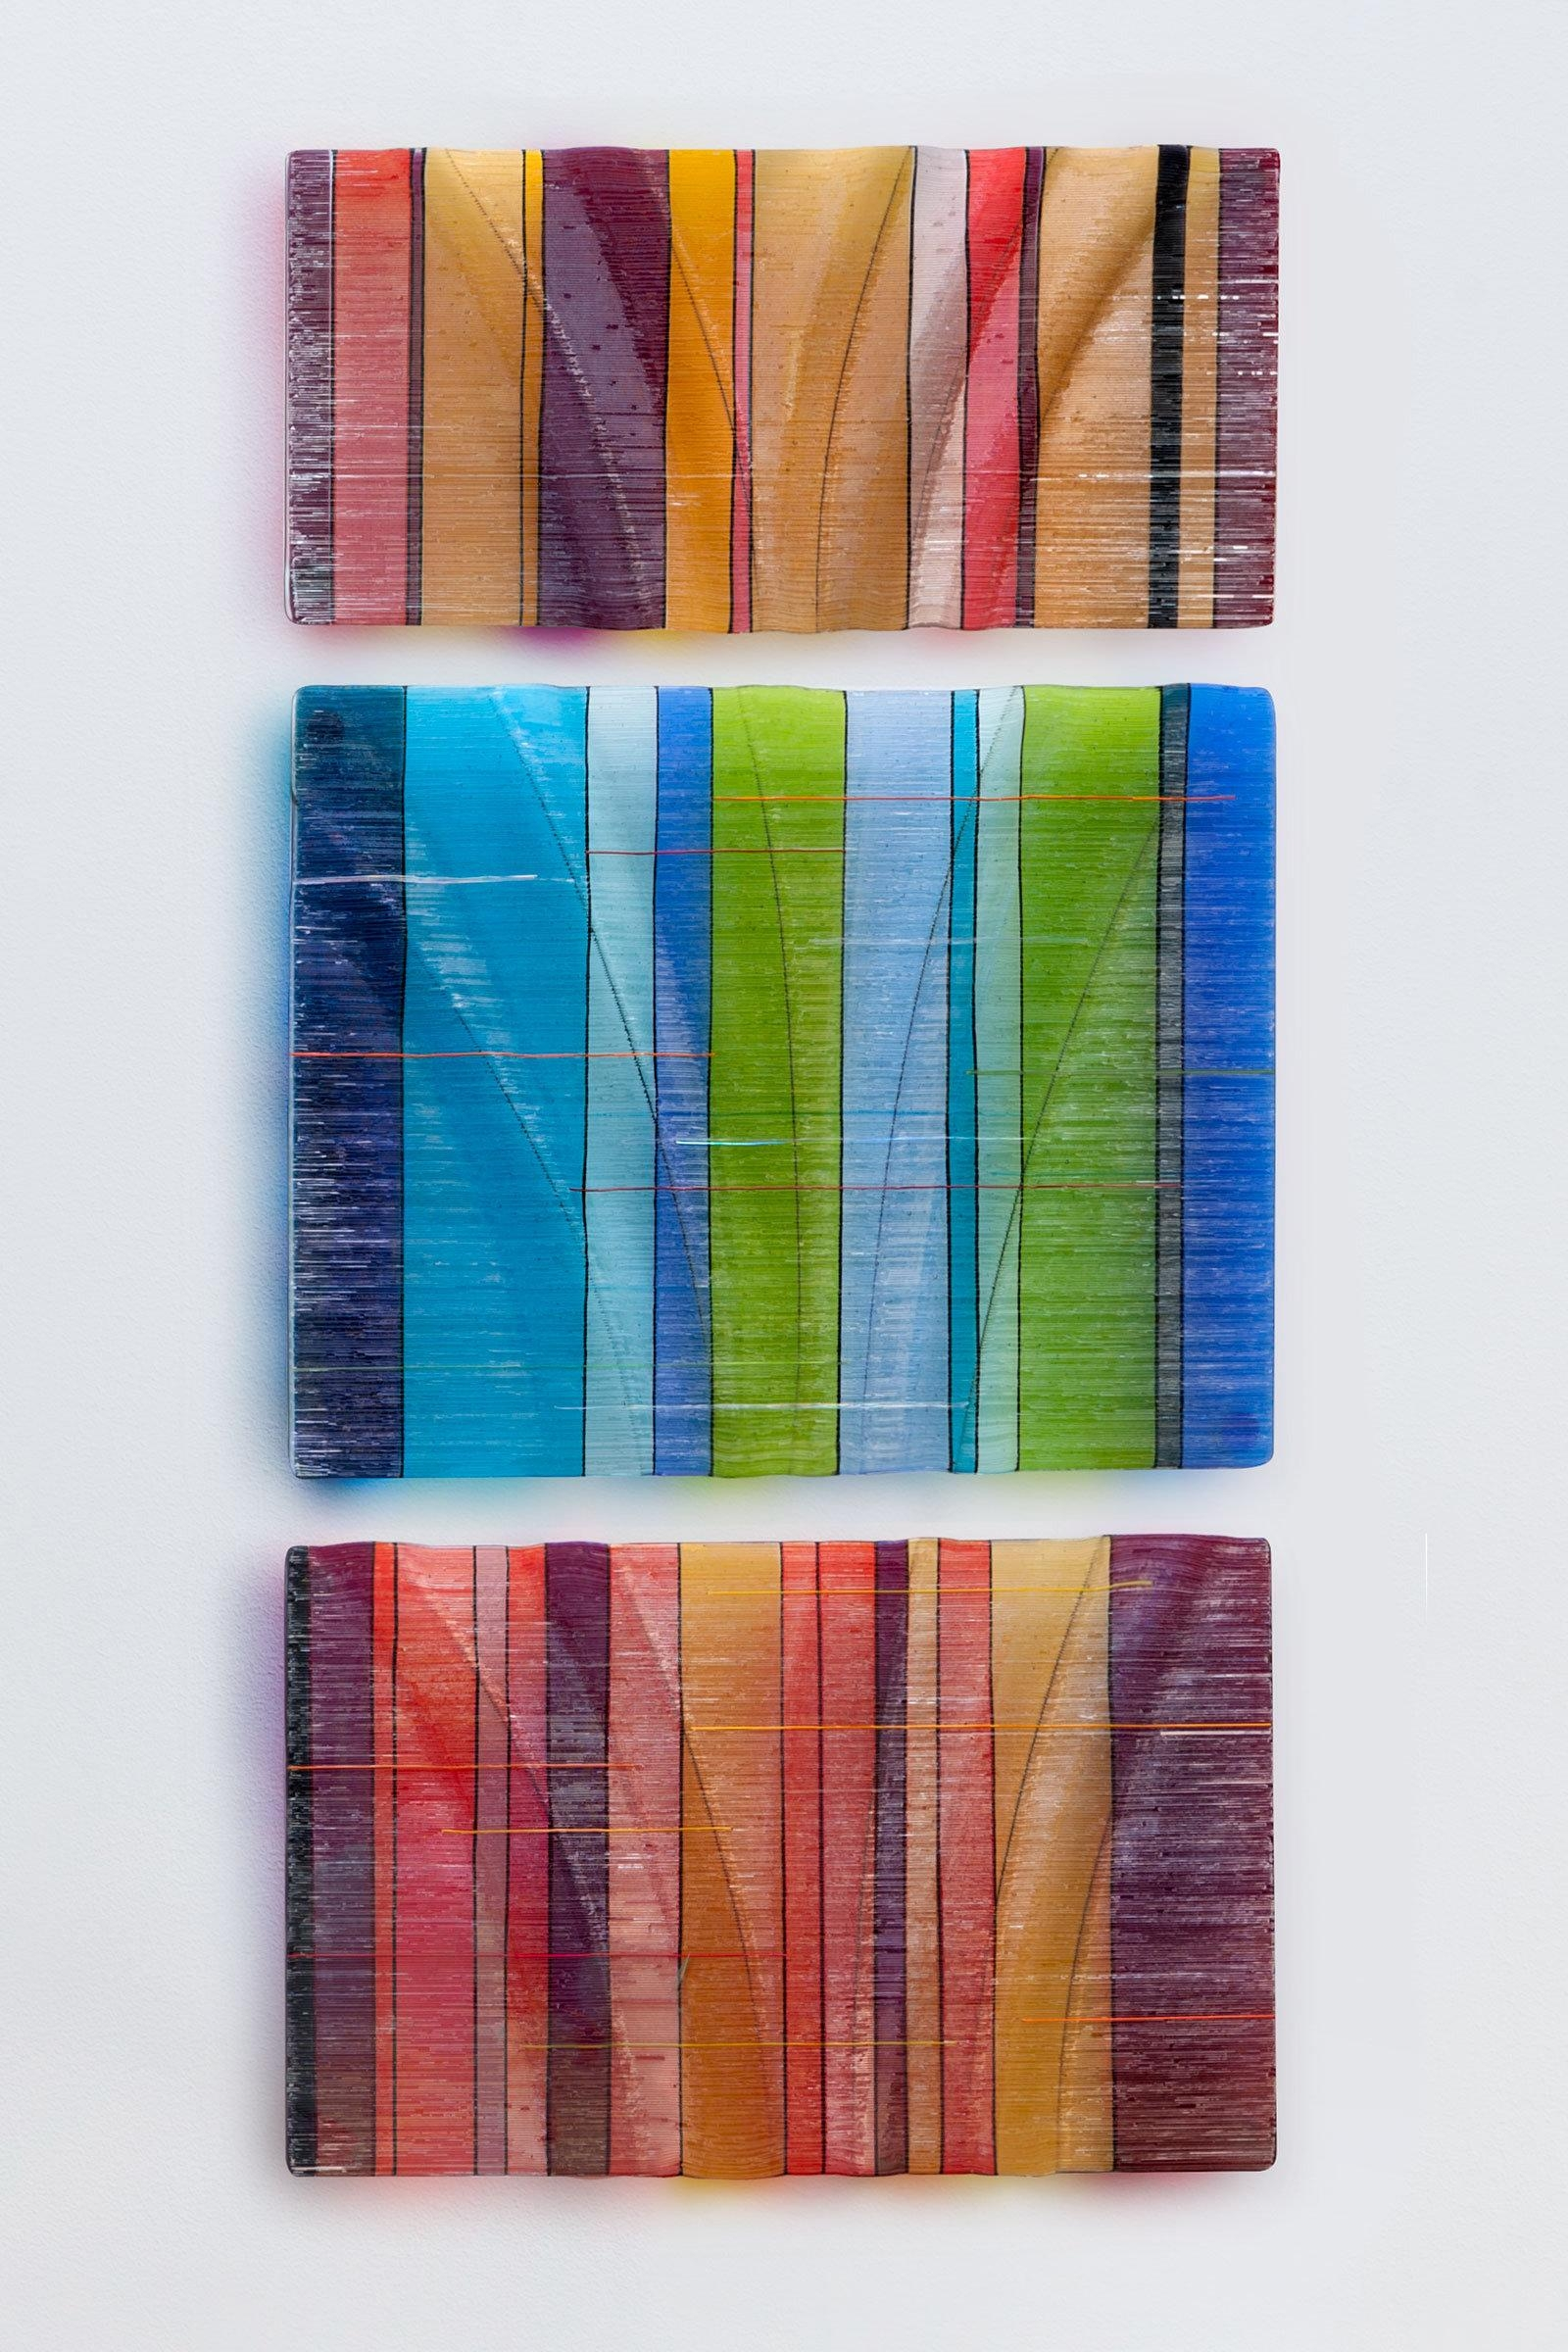 Glass Wall Artnorth American Artists | Artful Home With Regard To Fused Glass Wall Art For Sale (View 3 of 20)